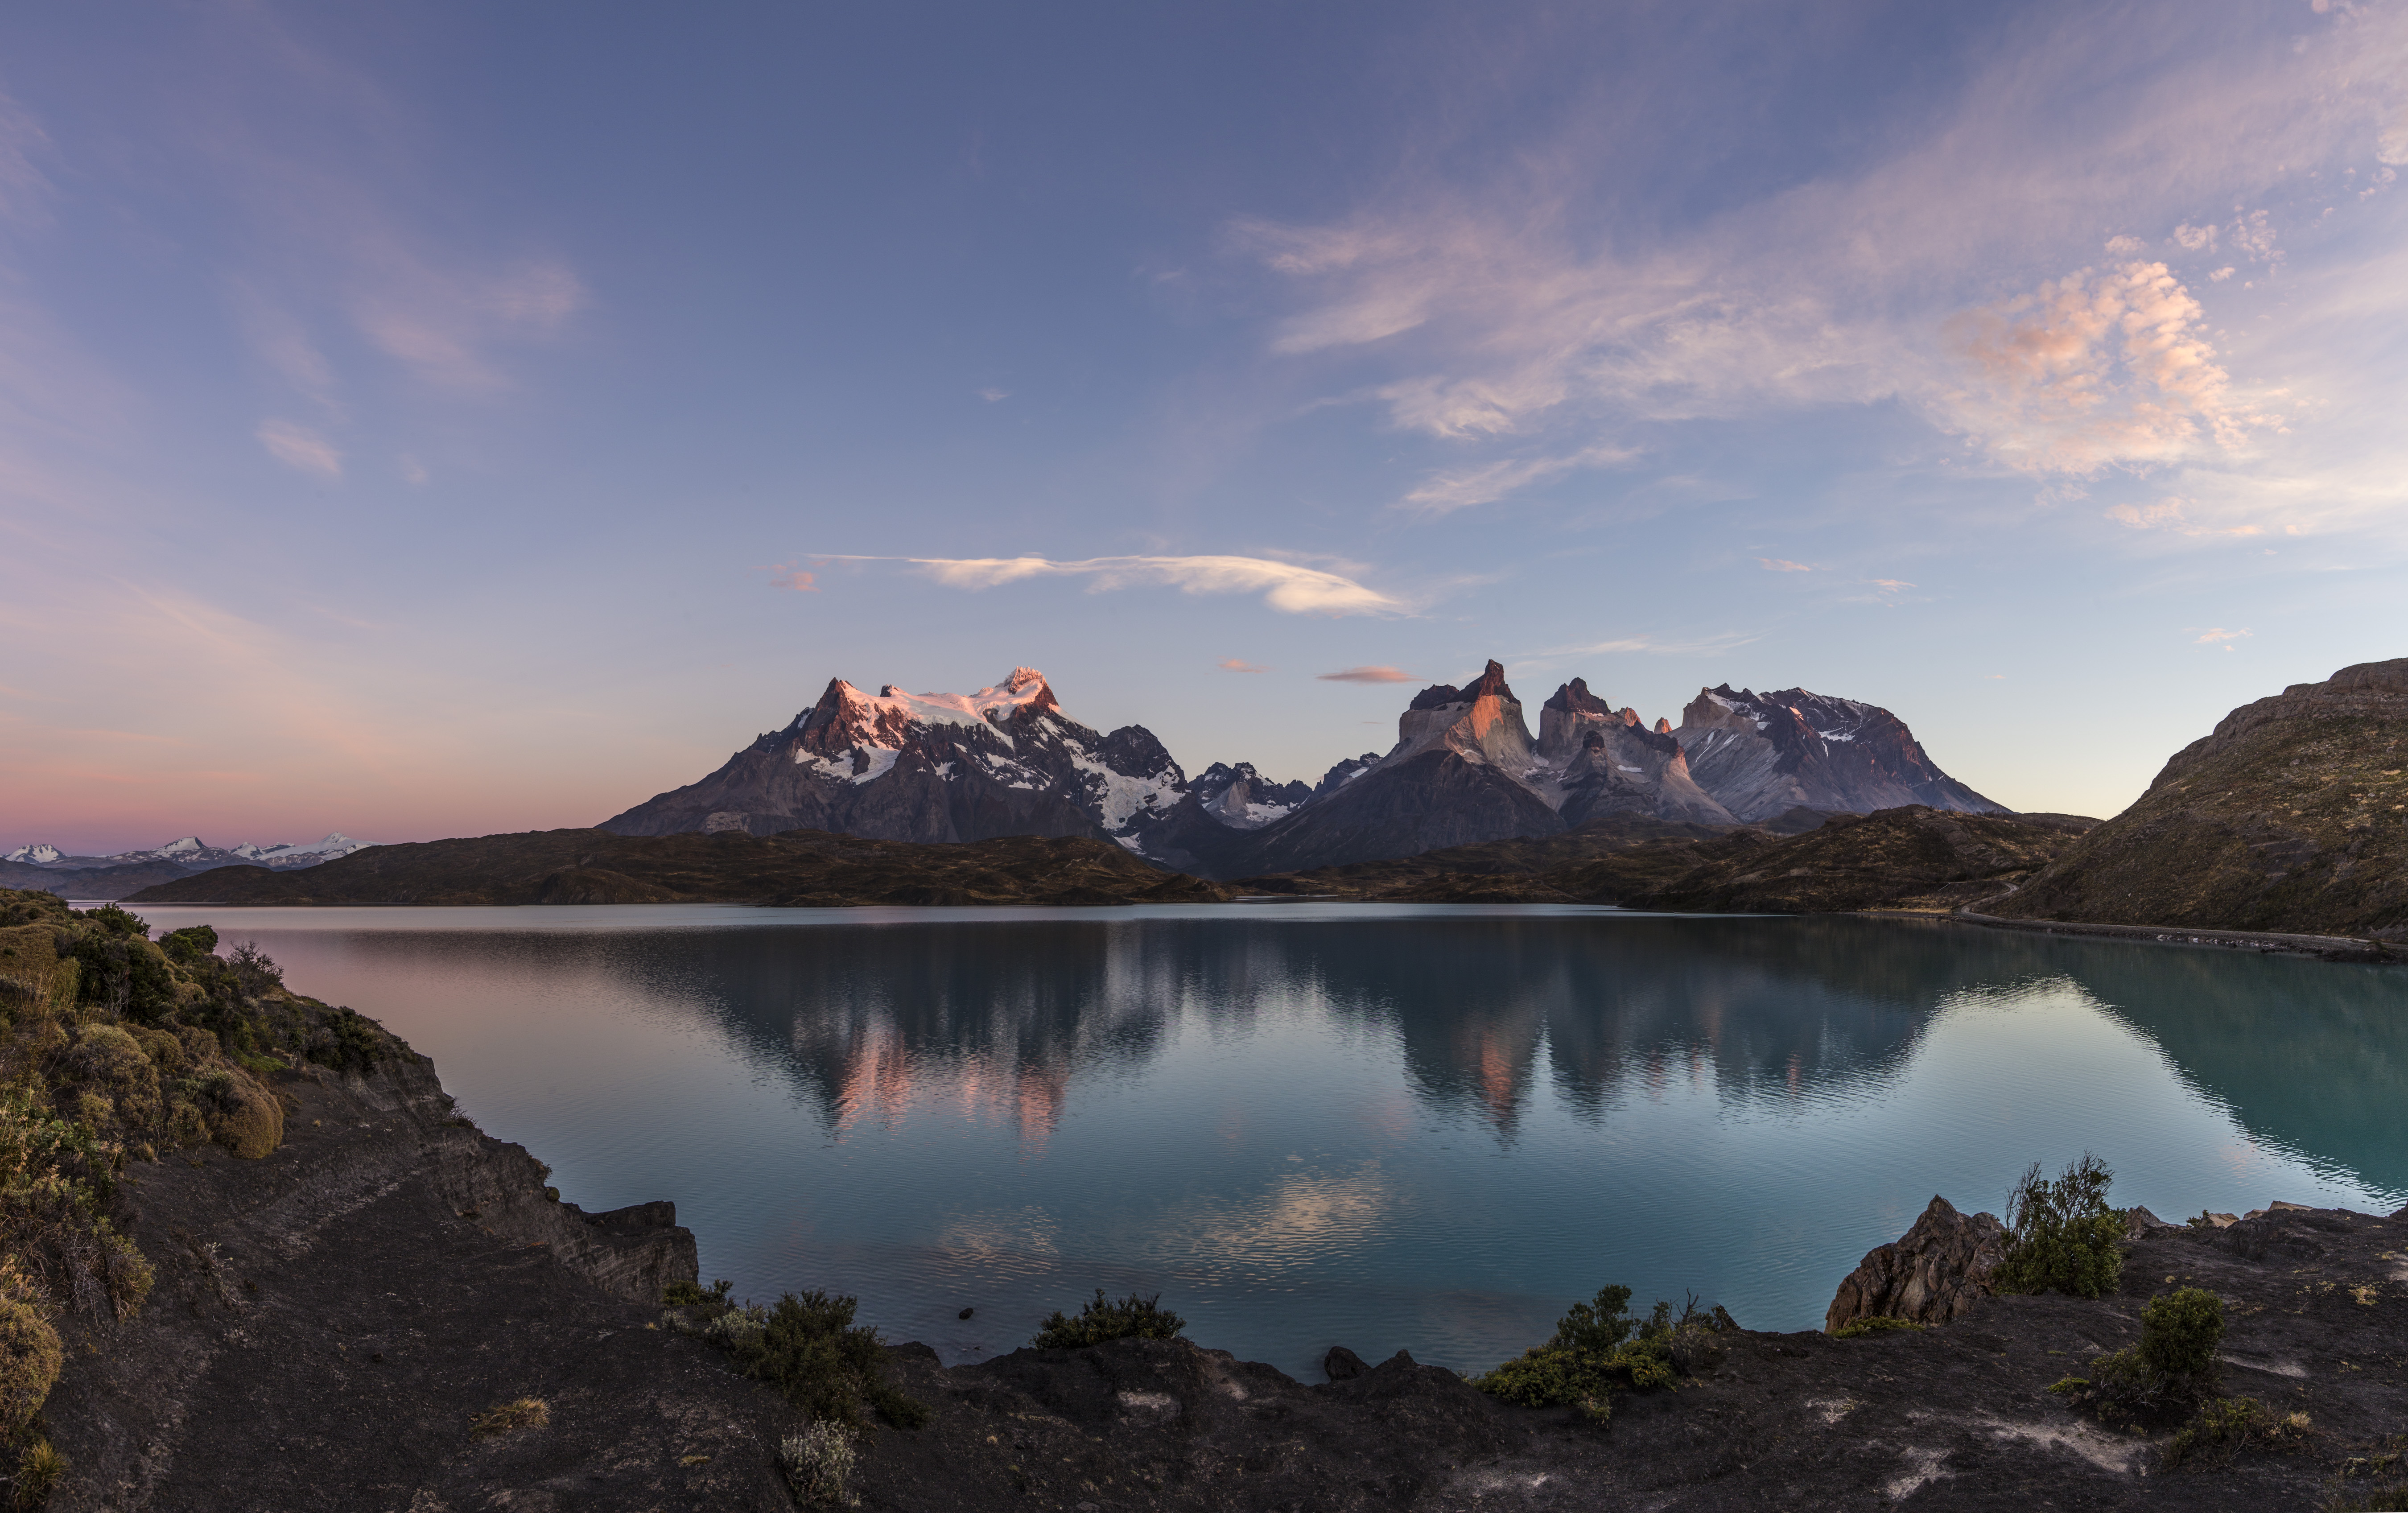 Sunrise view of the Paine Massif with reflections